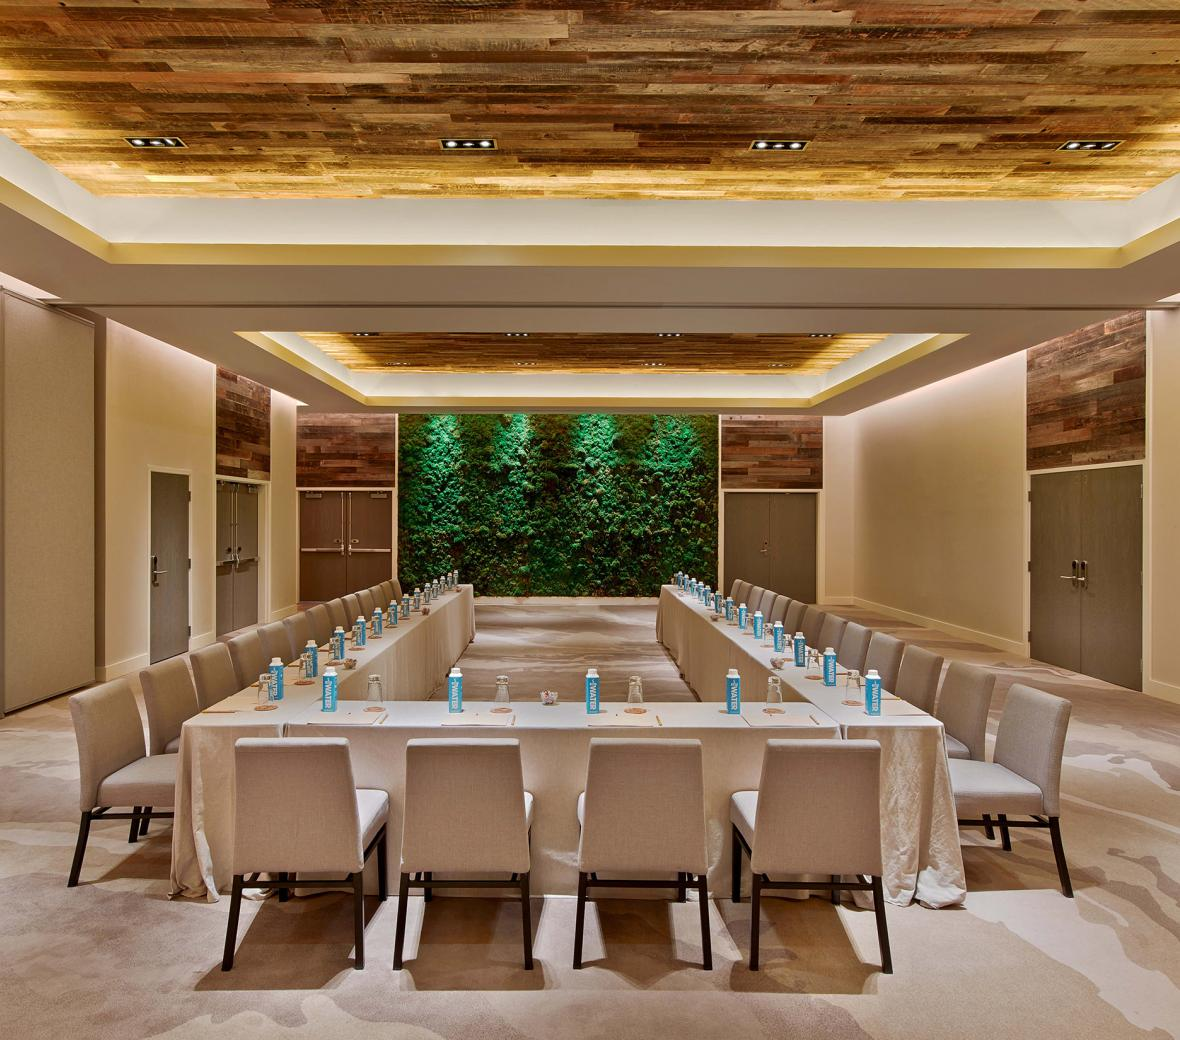 Smaller meeting room at South Beach